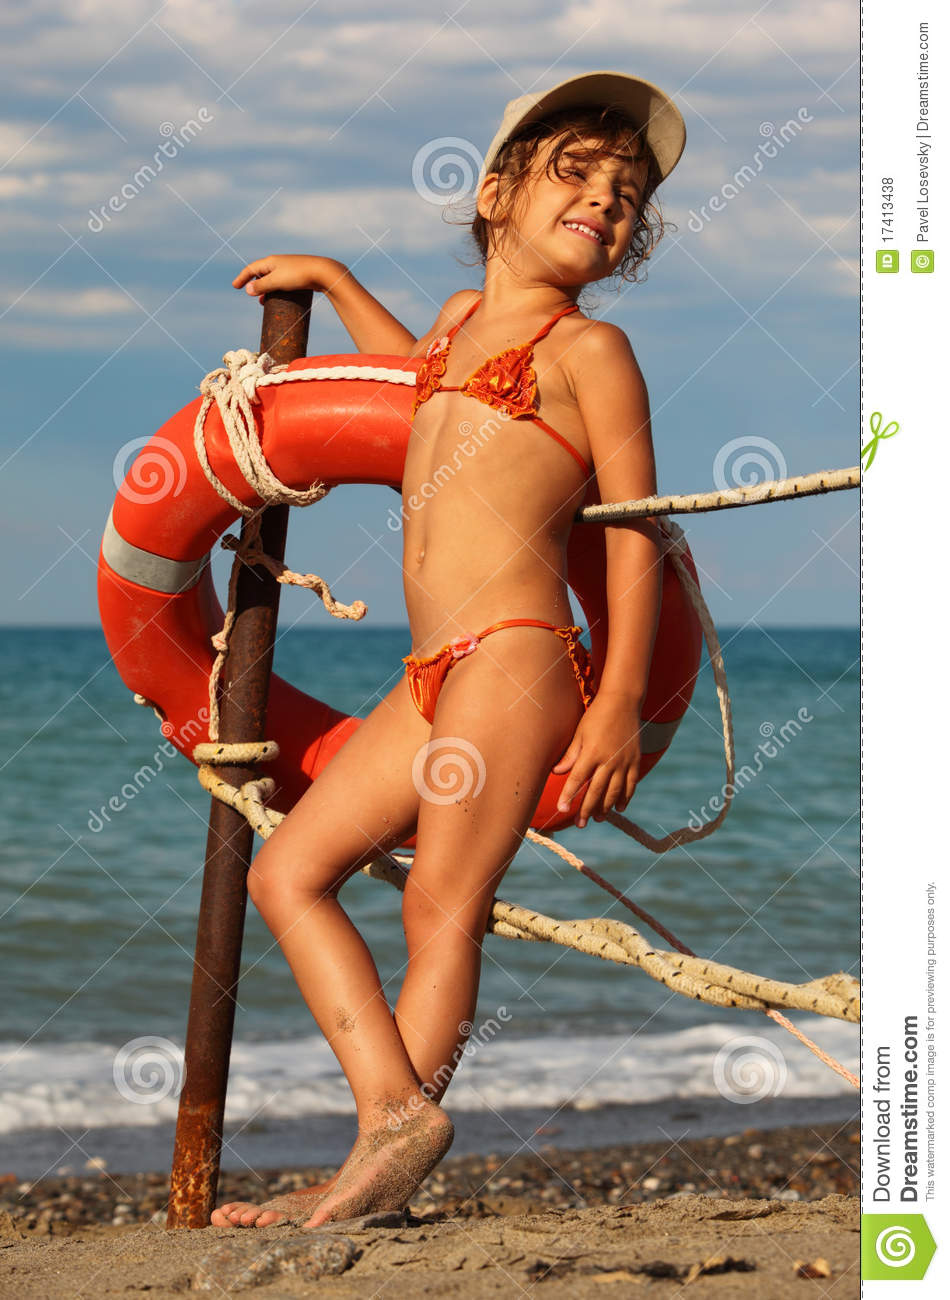 Beautiful little girl in bathing suit and cap standing on beach. she ...